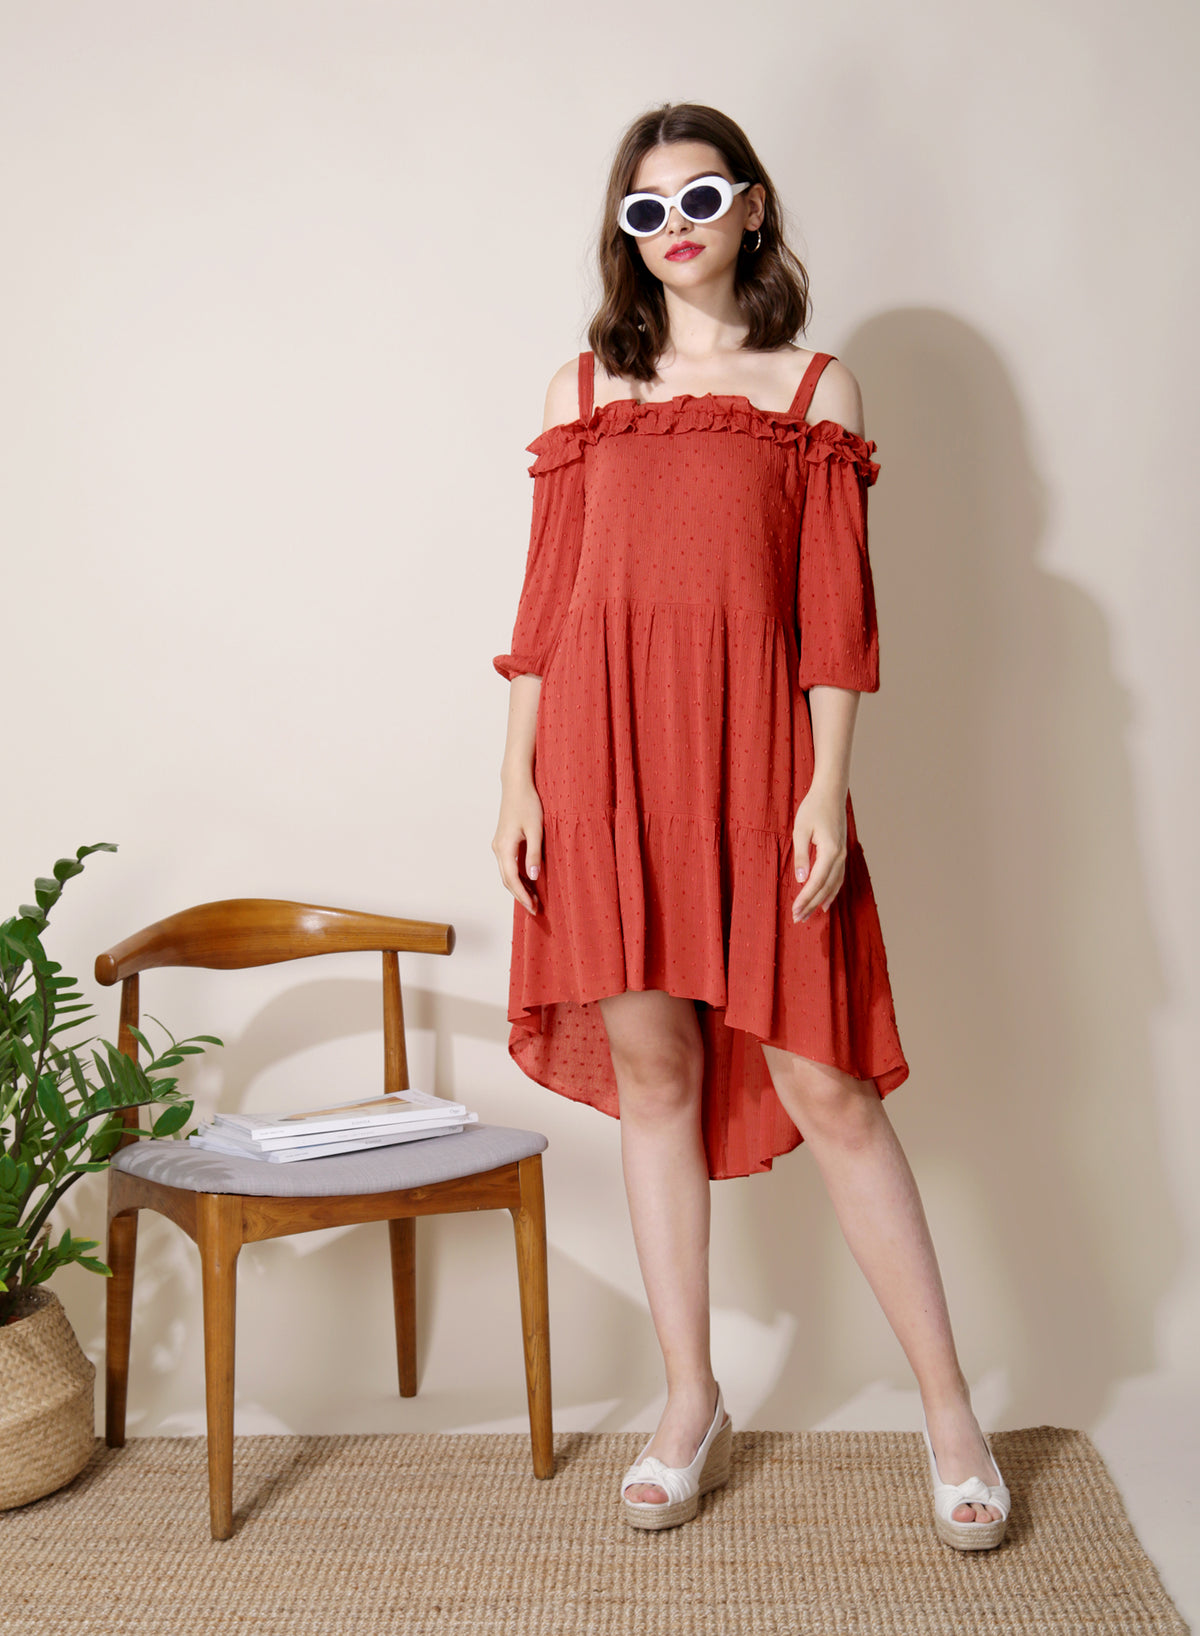 Veranda Swiss Dot Trapeze Dress (Rust) at $ 42.50 only sold at And Well Dressed Online Fashion Store Singapore